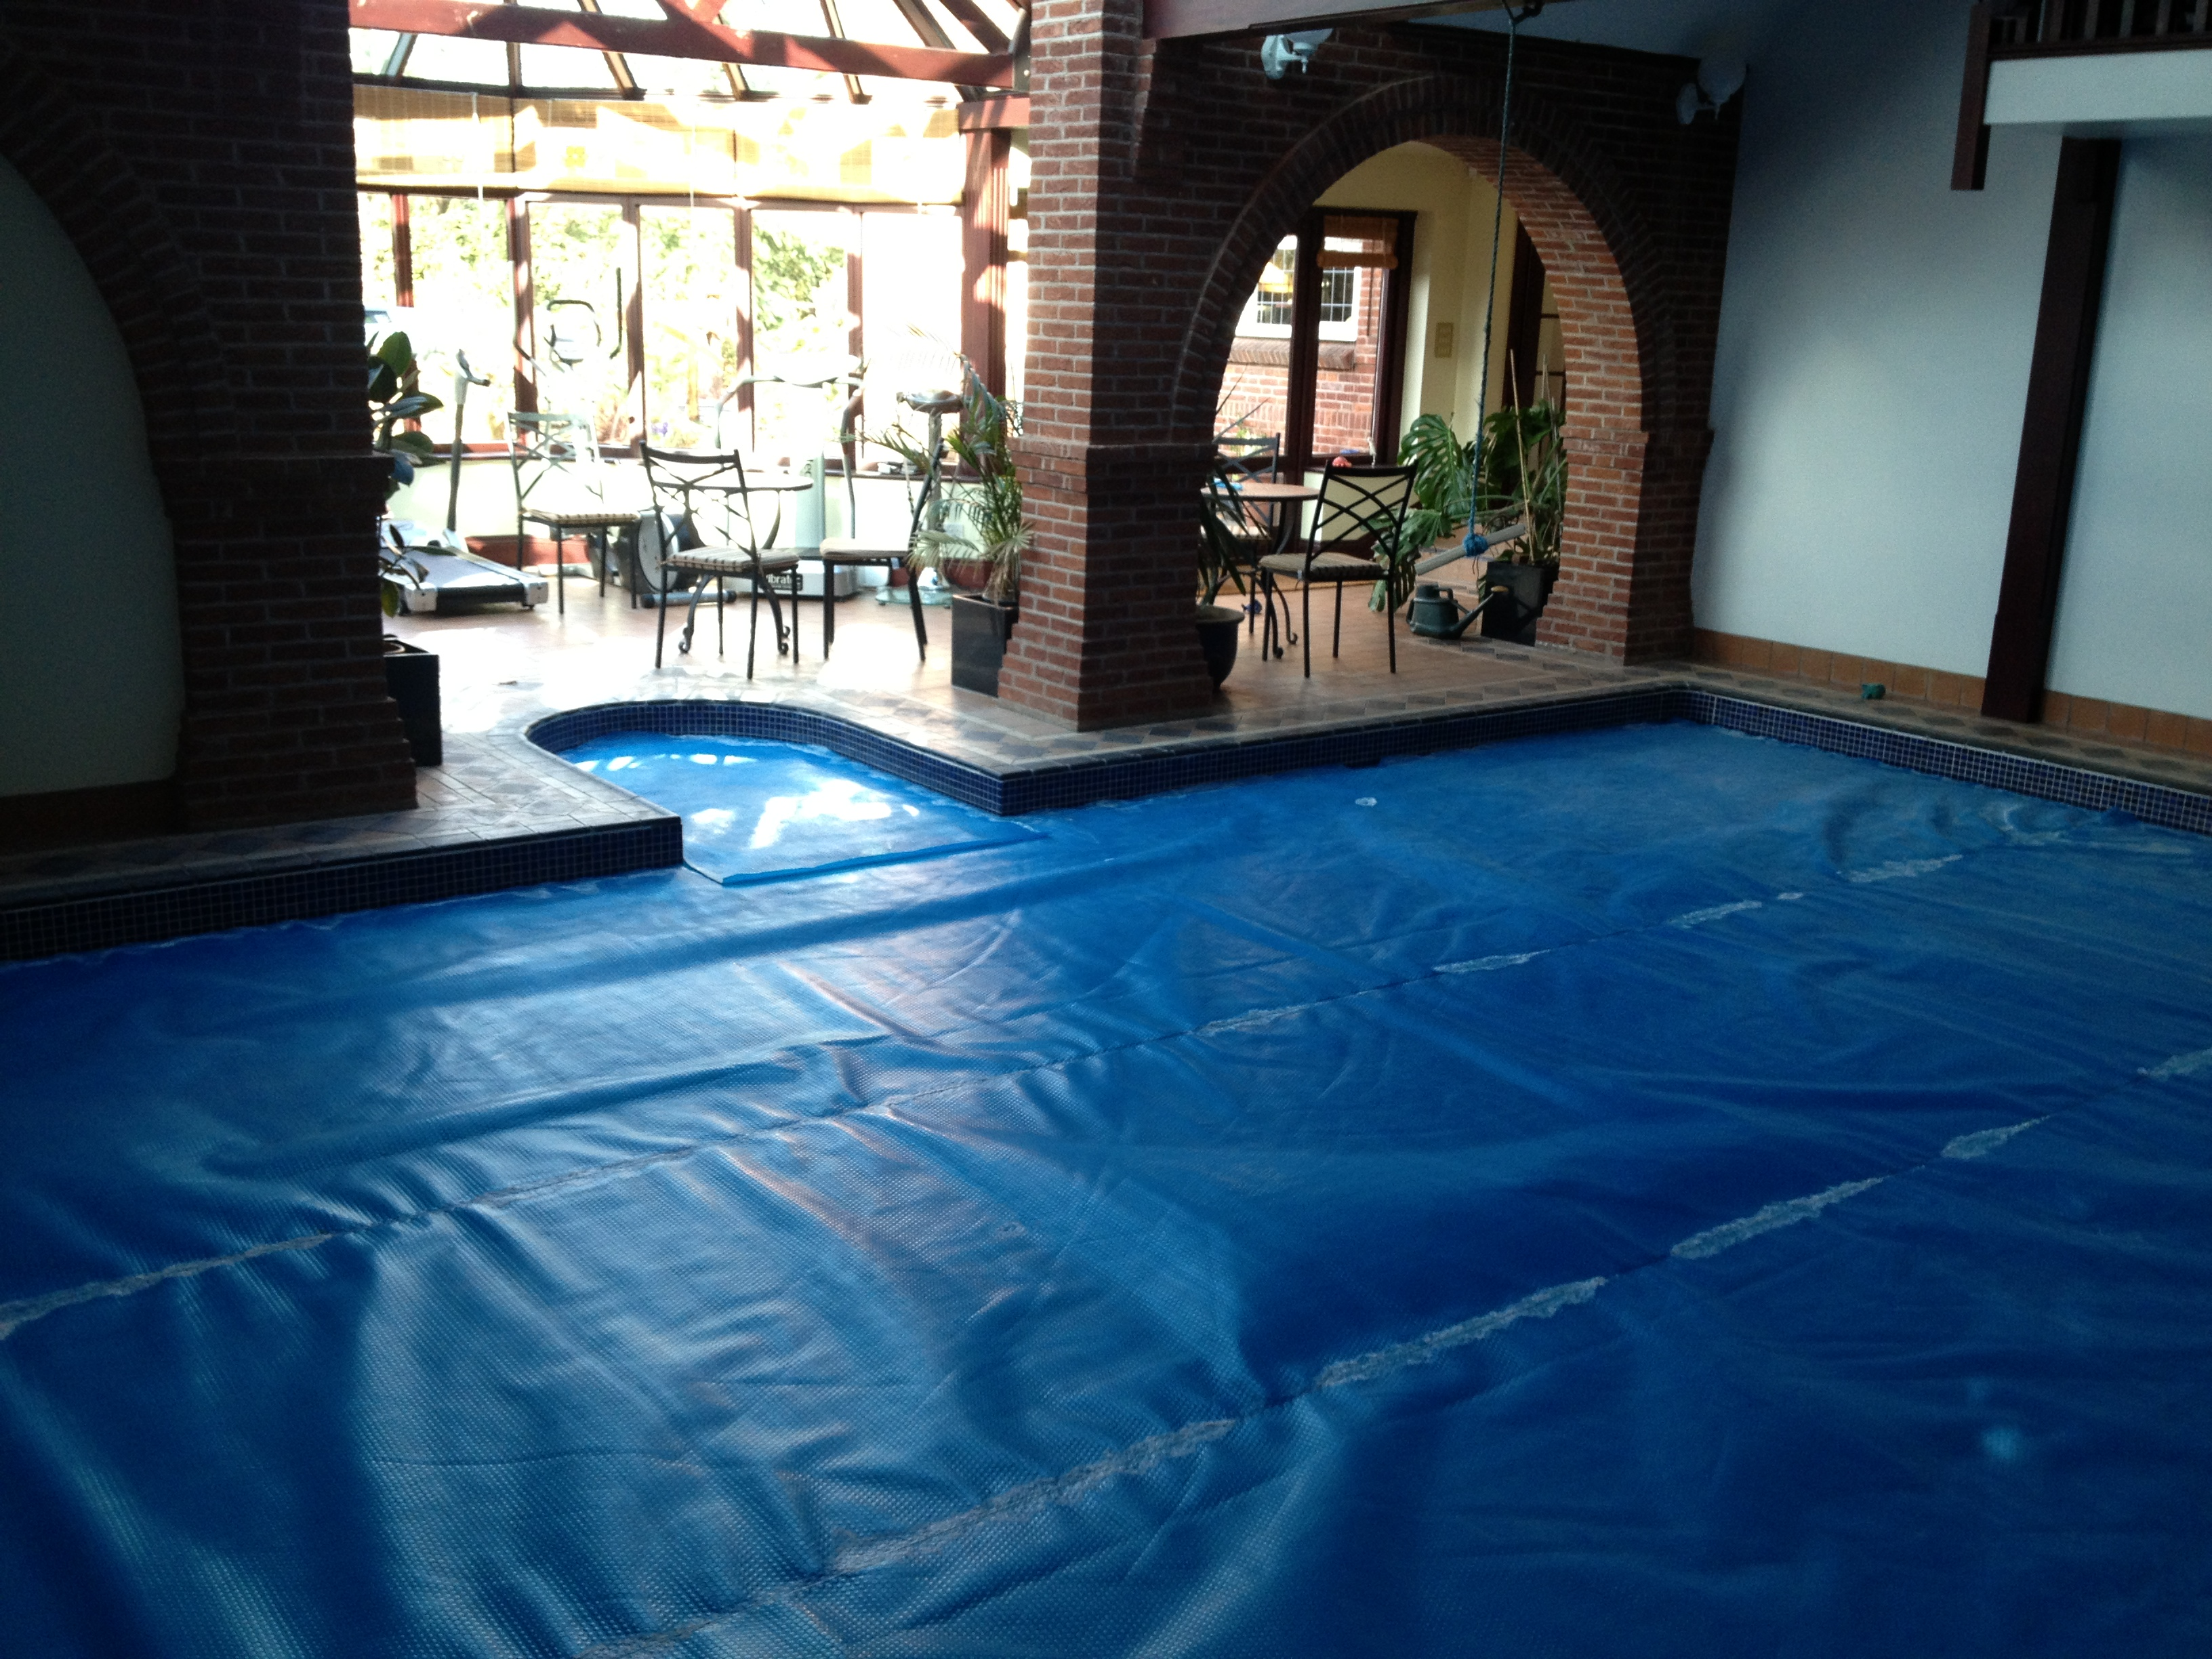 image of swimming pool covered over during project